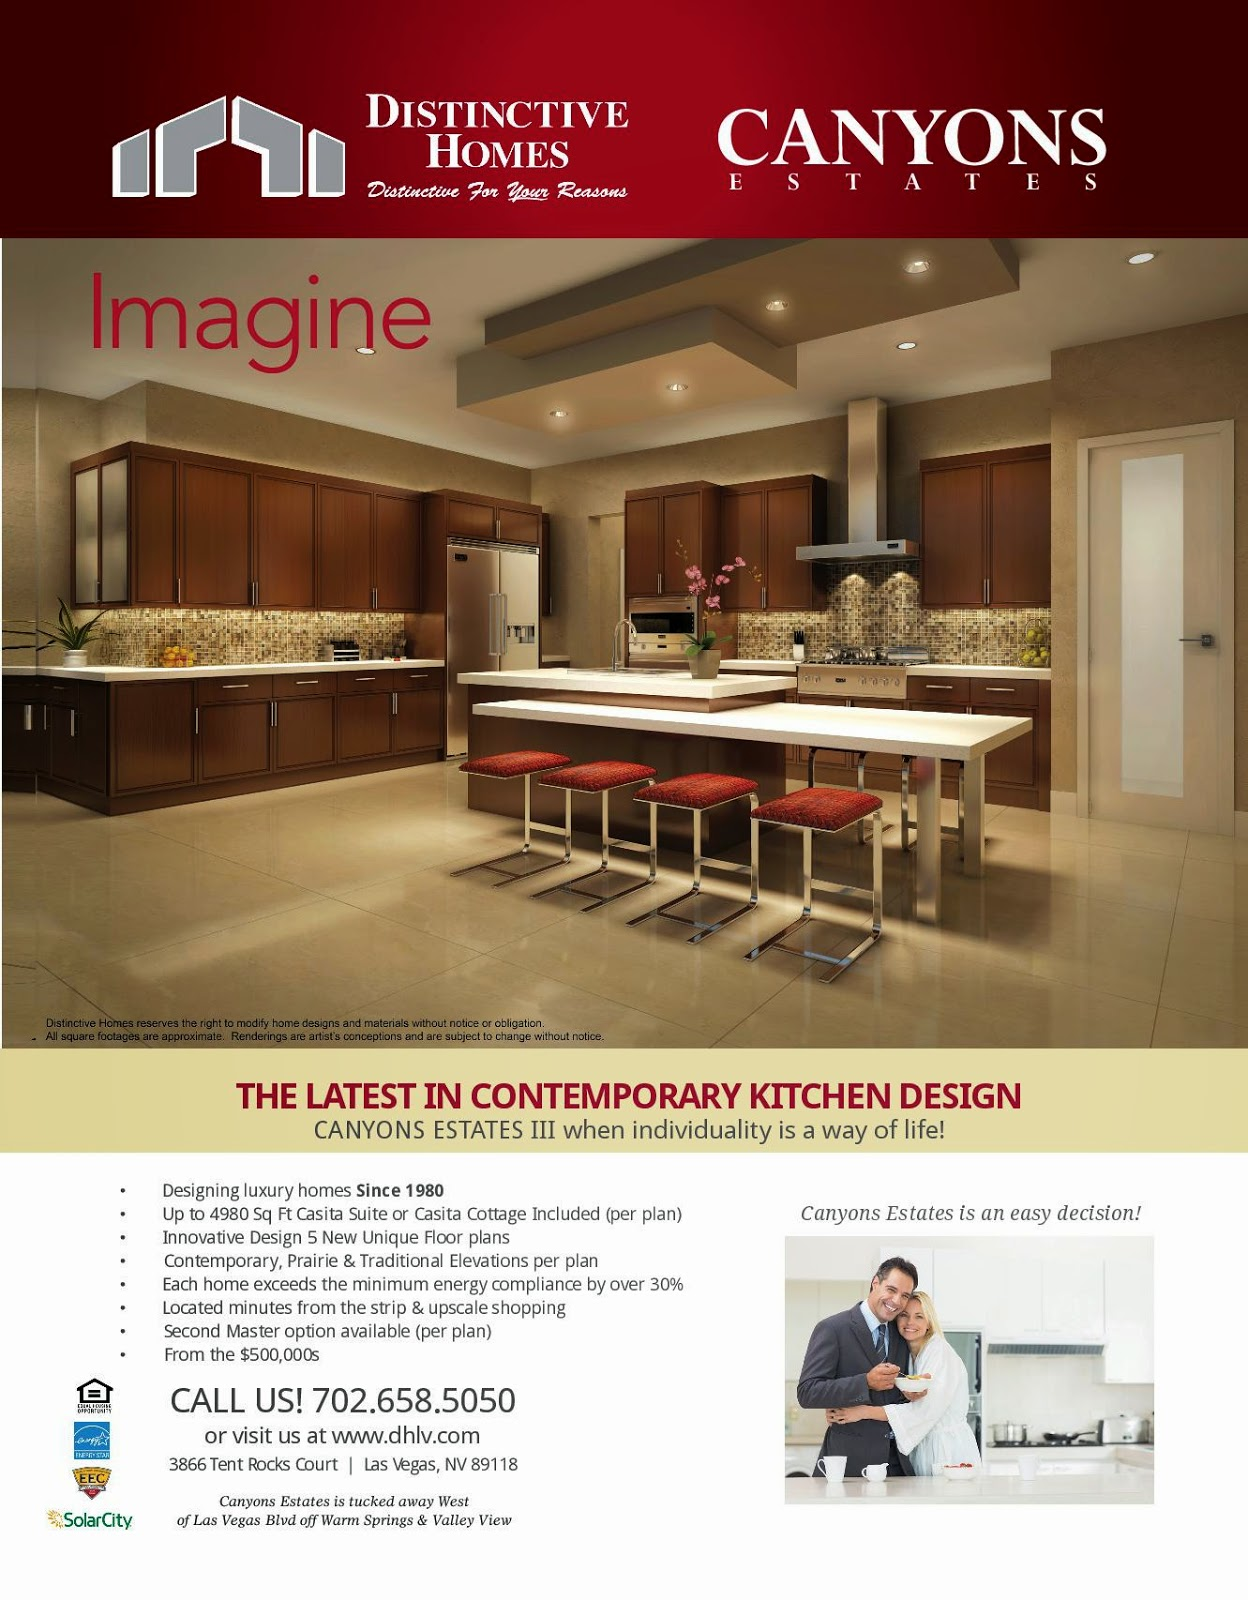 Distinctive Homes Las Vegas New Contemporary Kitchen Design